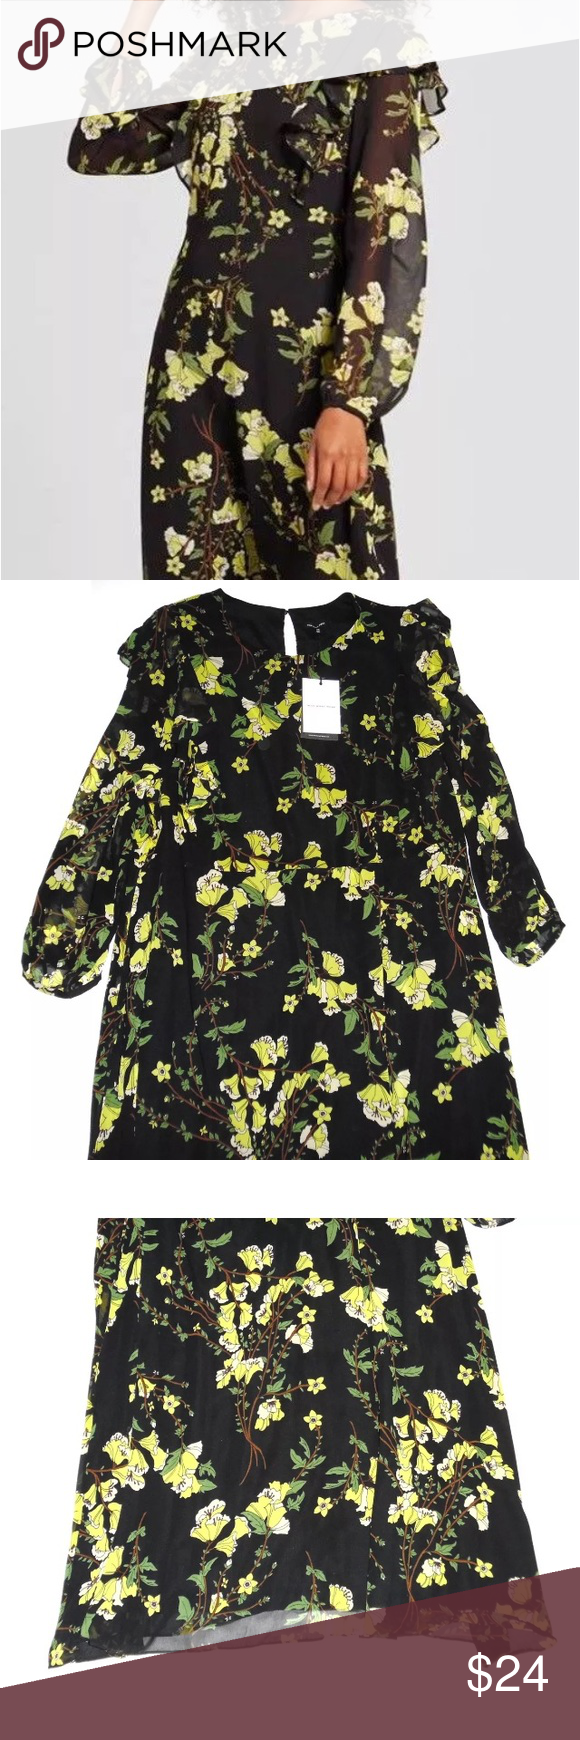 New Who What Wear Black Yellow Floral Dress Yellow Floral Dress Who What Wear Floral Dress [ 1740 x 580 Pixel ]